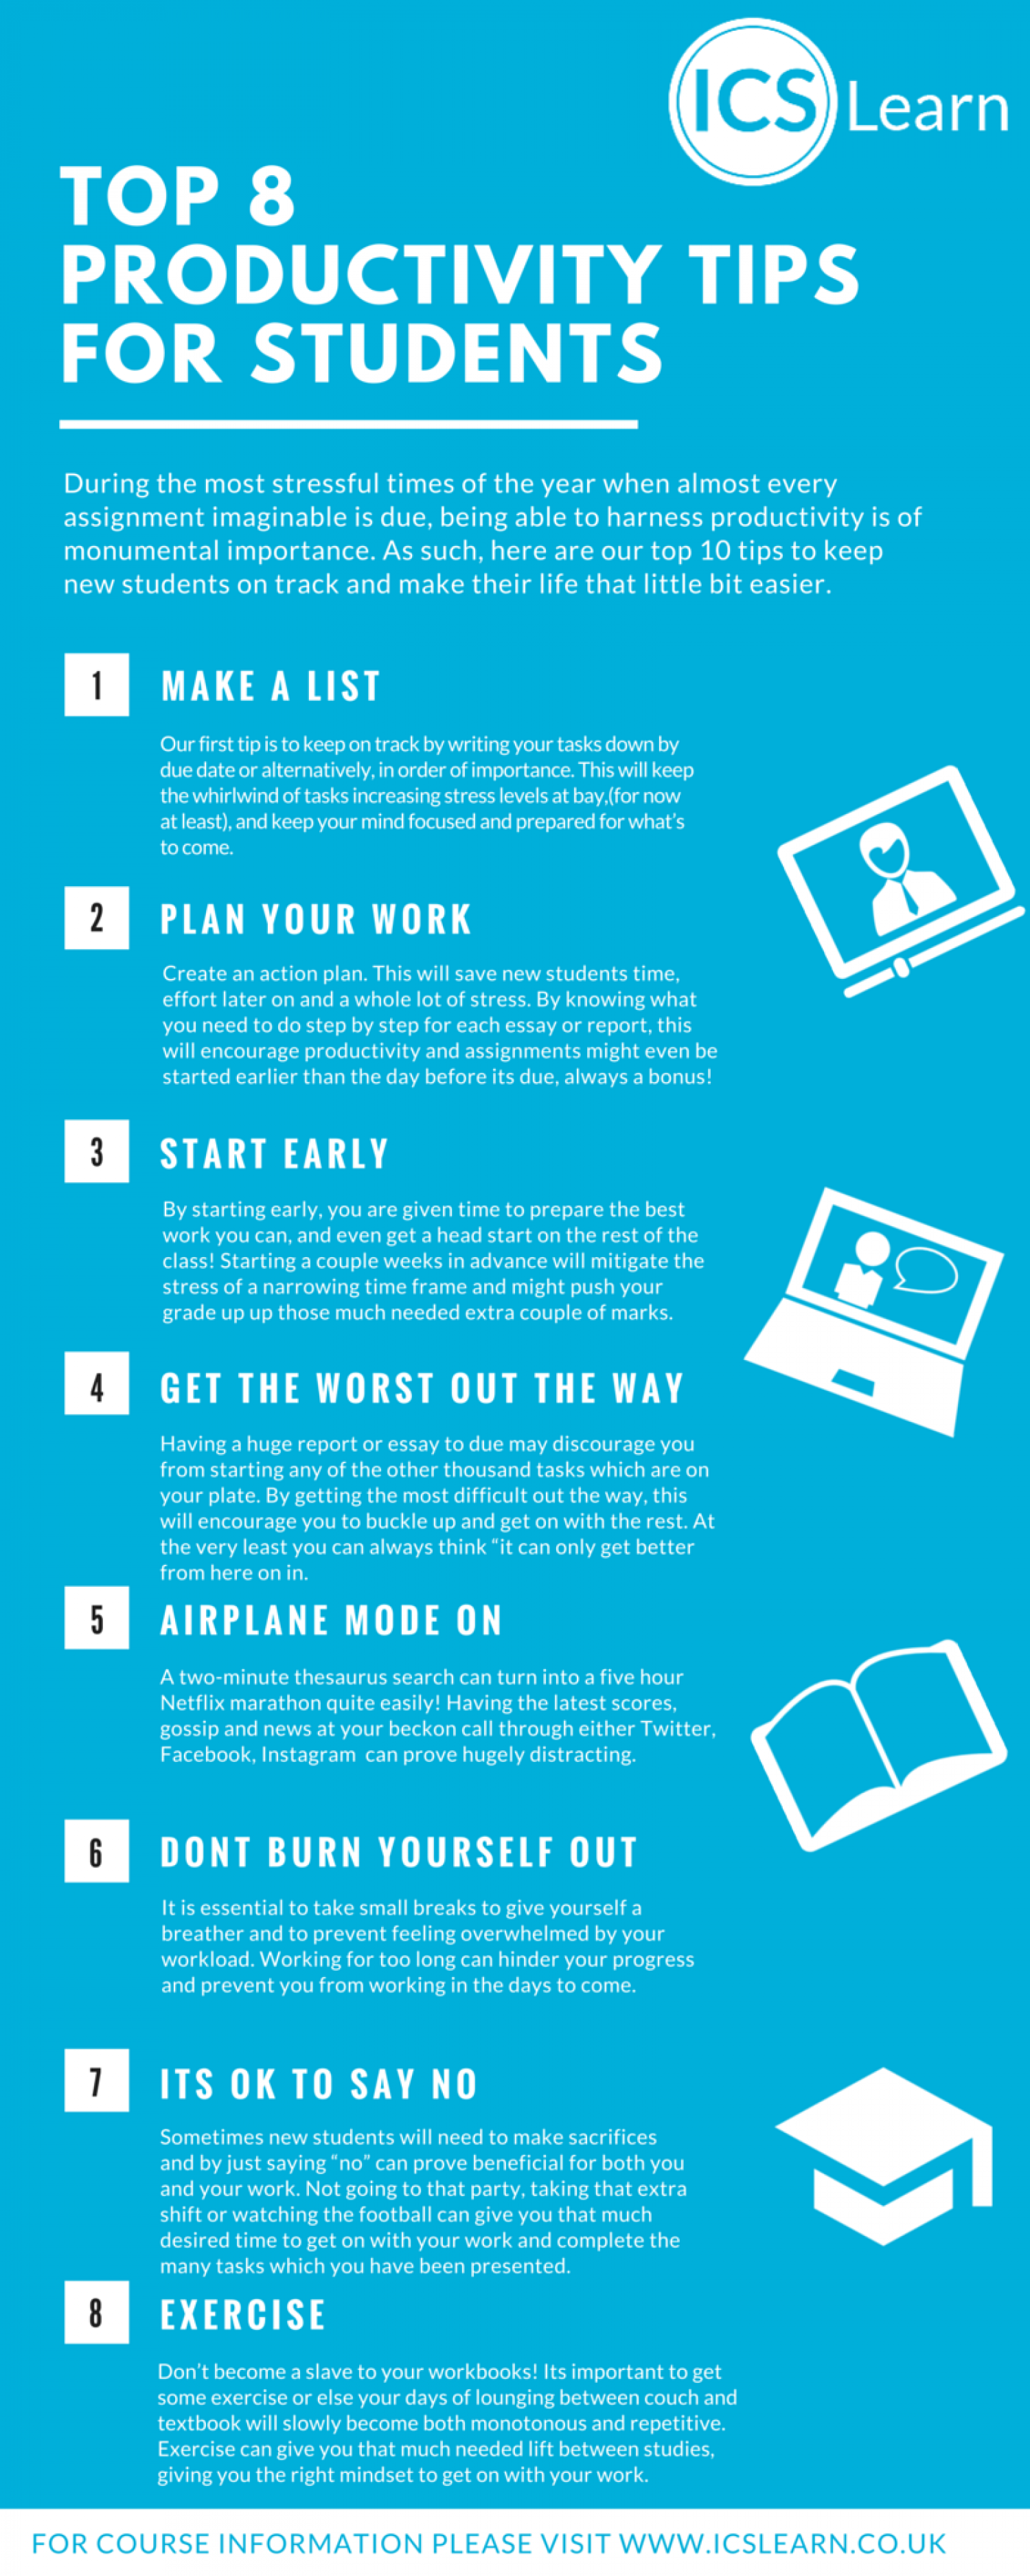 Top 8 Productivity Tips for New Students Infographic